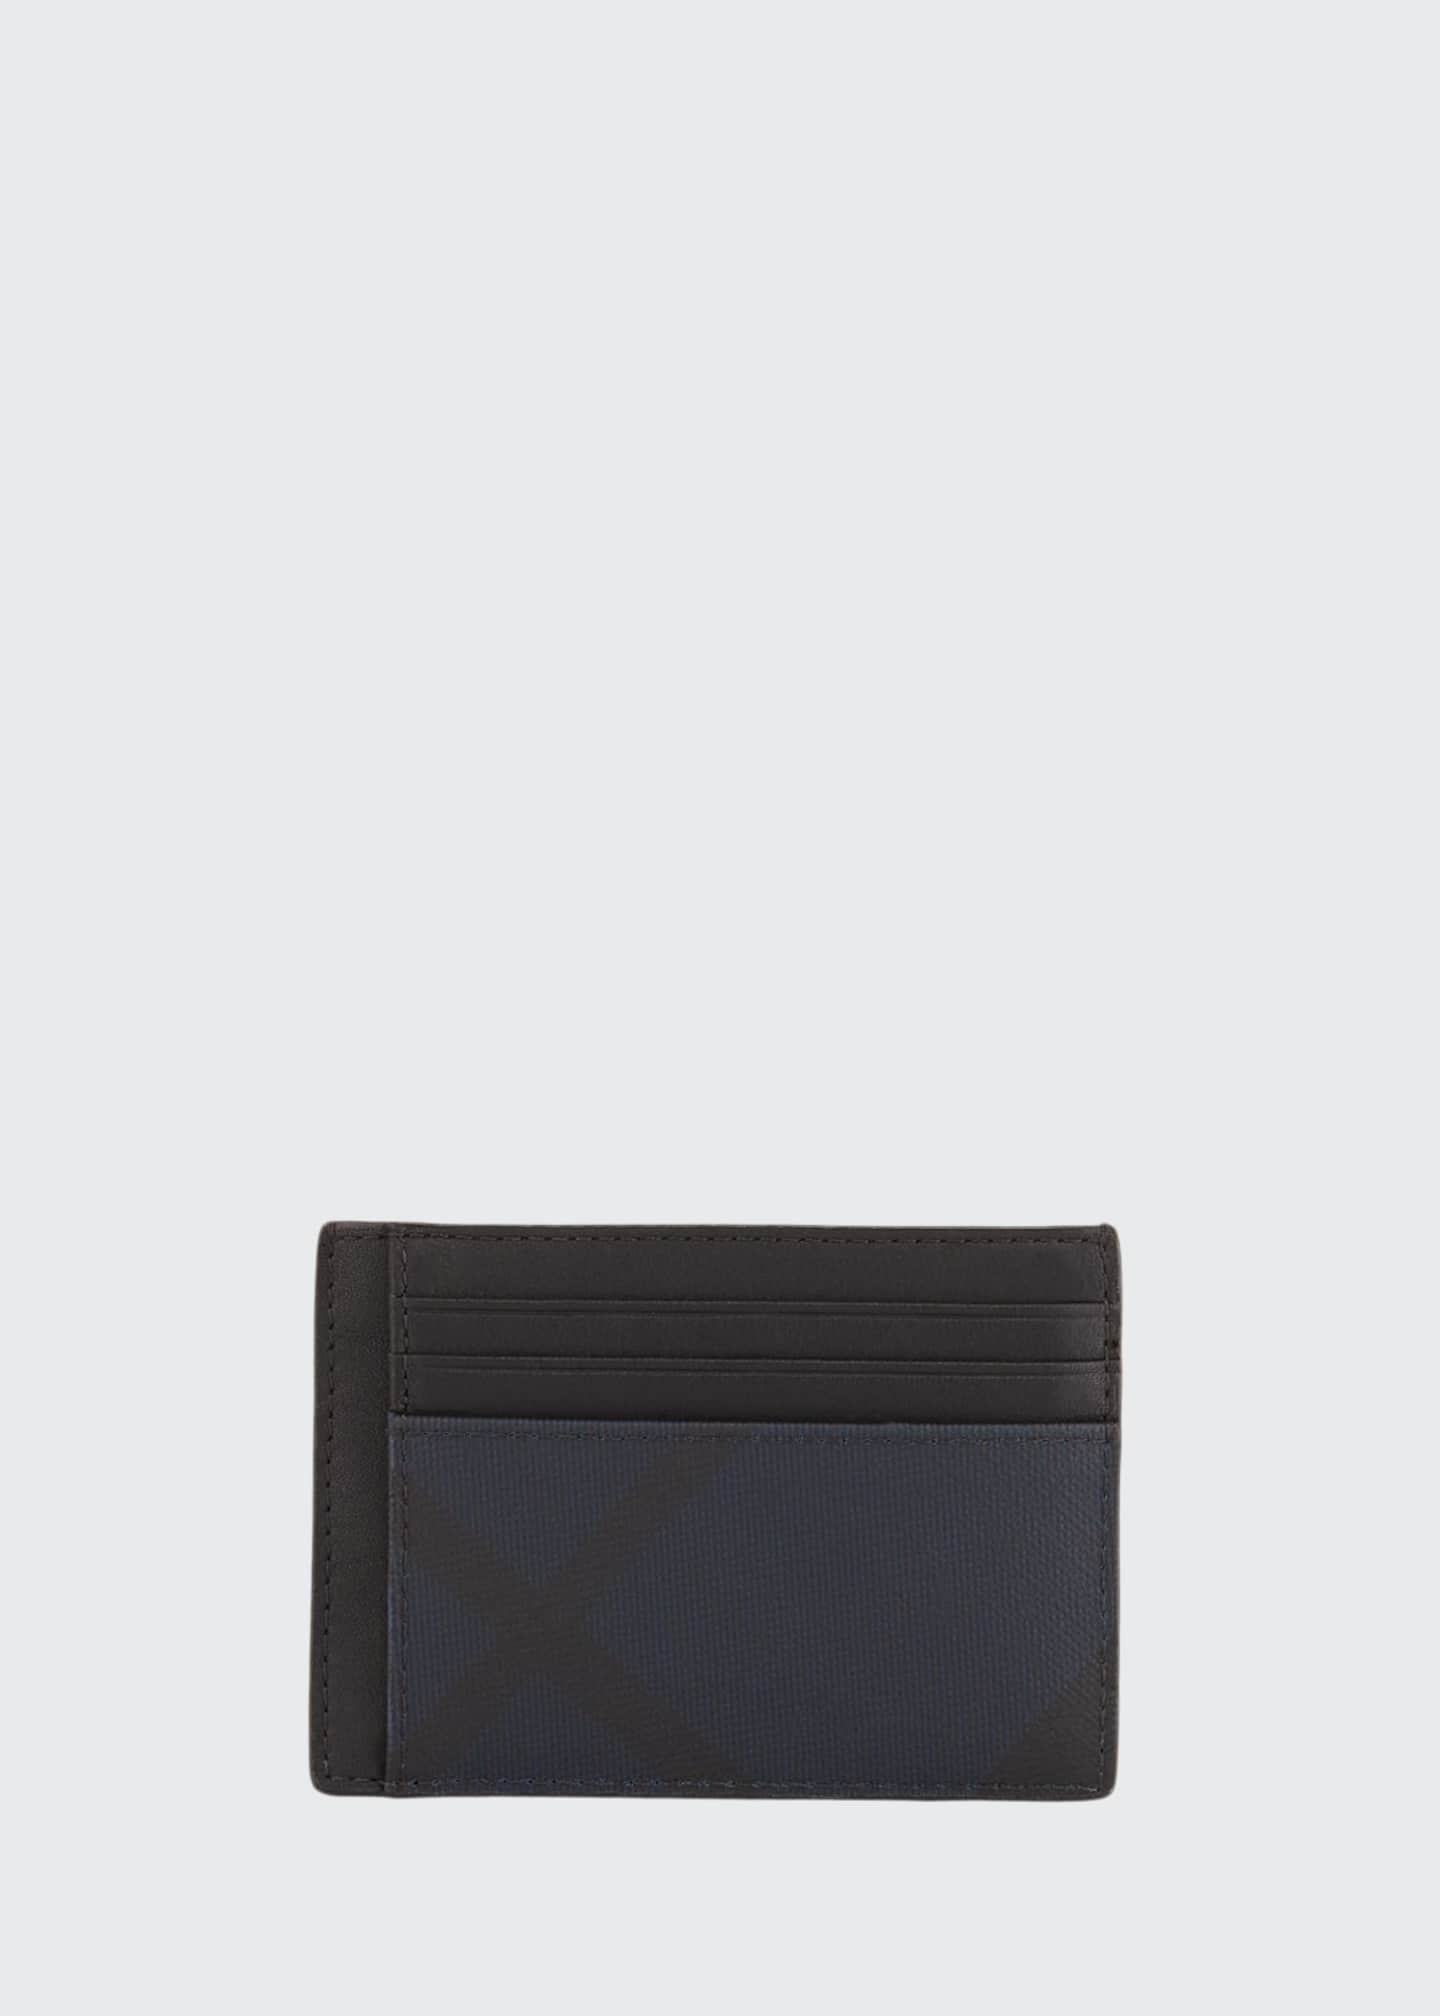 Burberry Men's Chase London Check Card Case w/